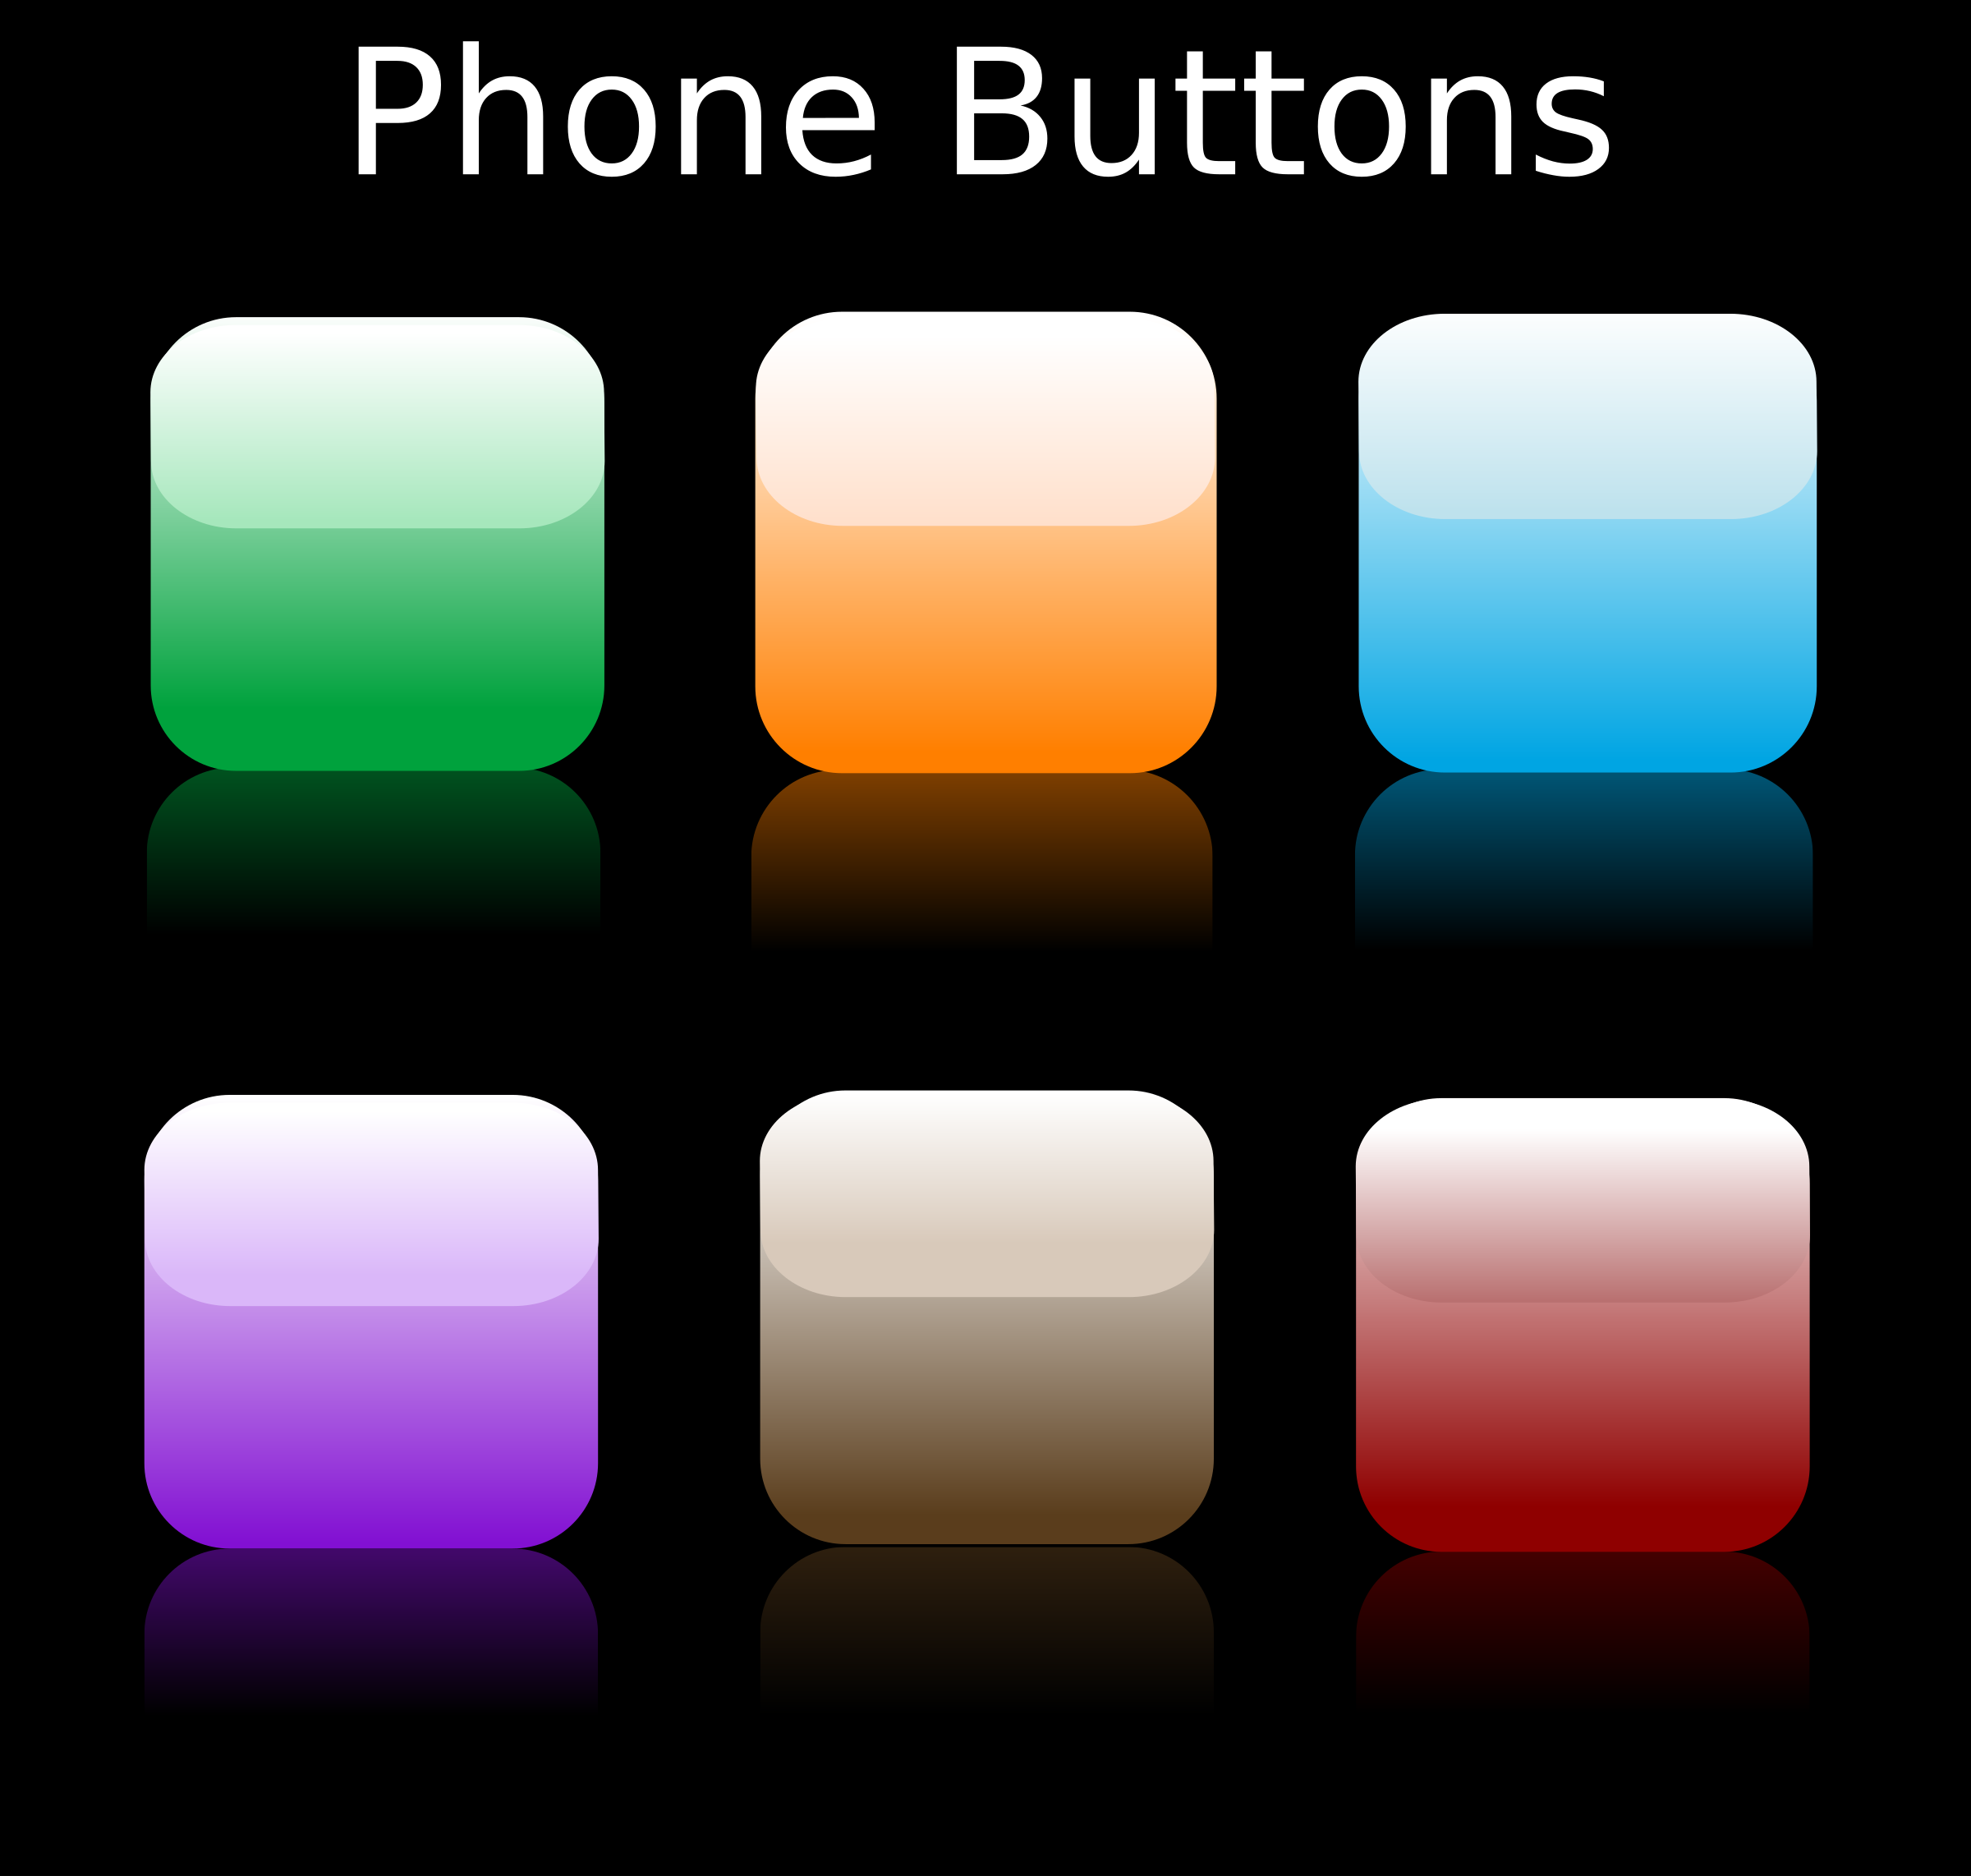 Phone Buttons by ben